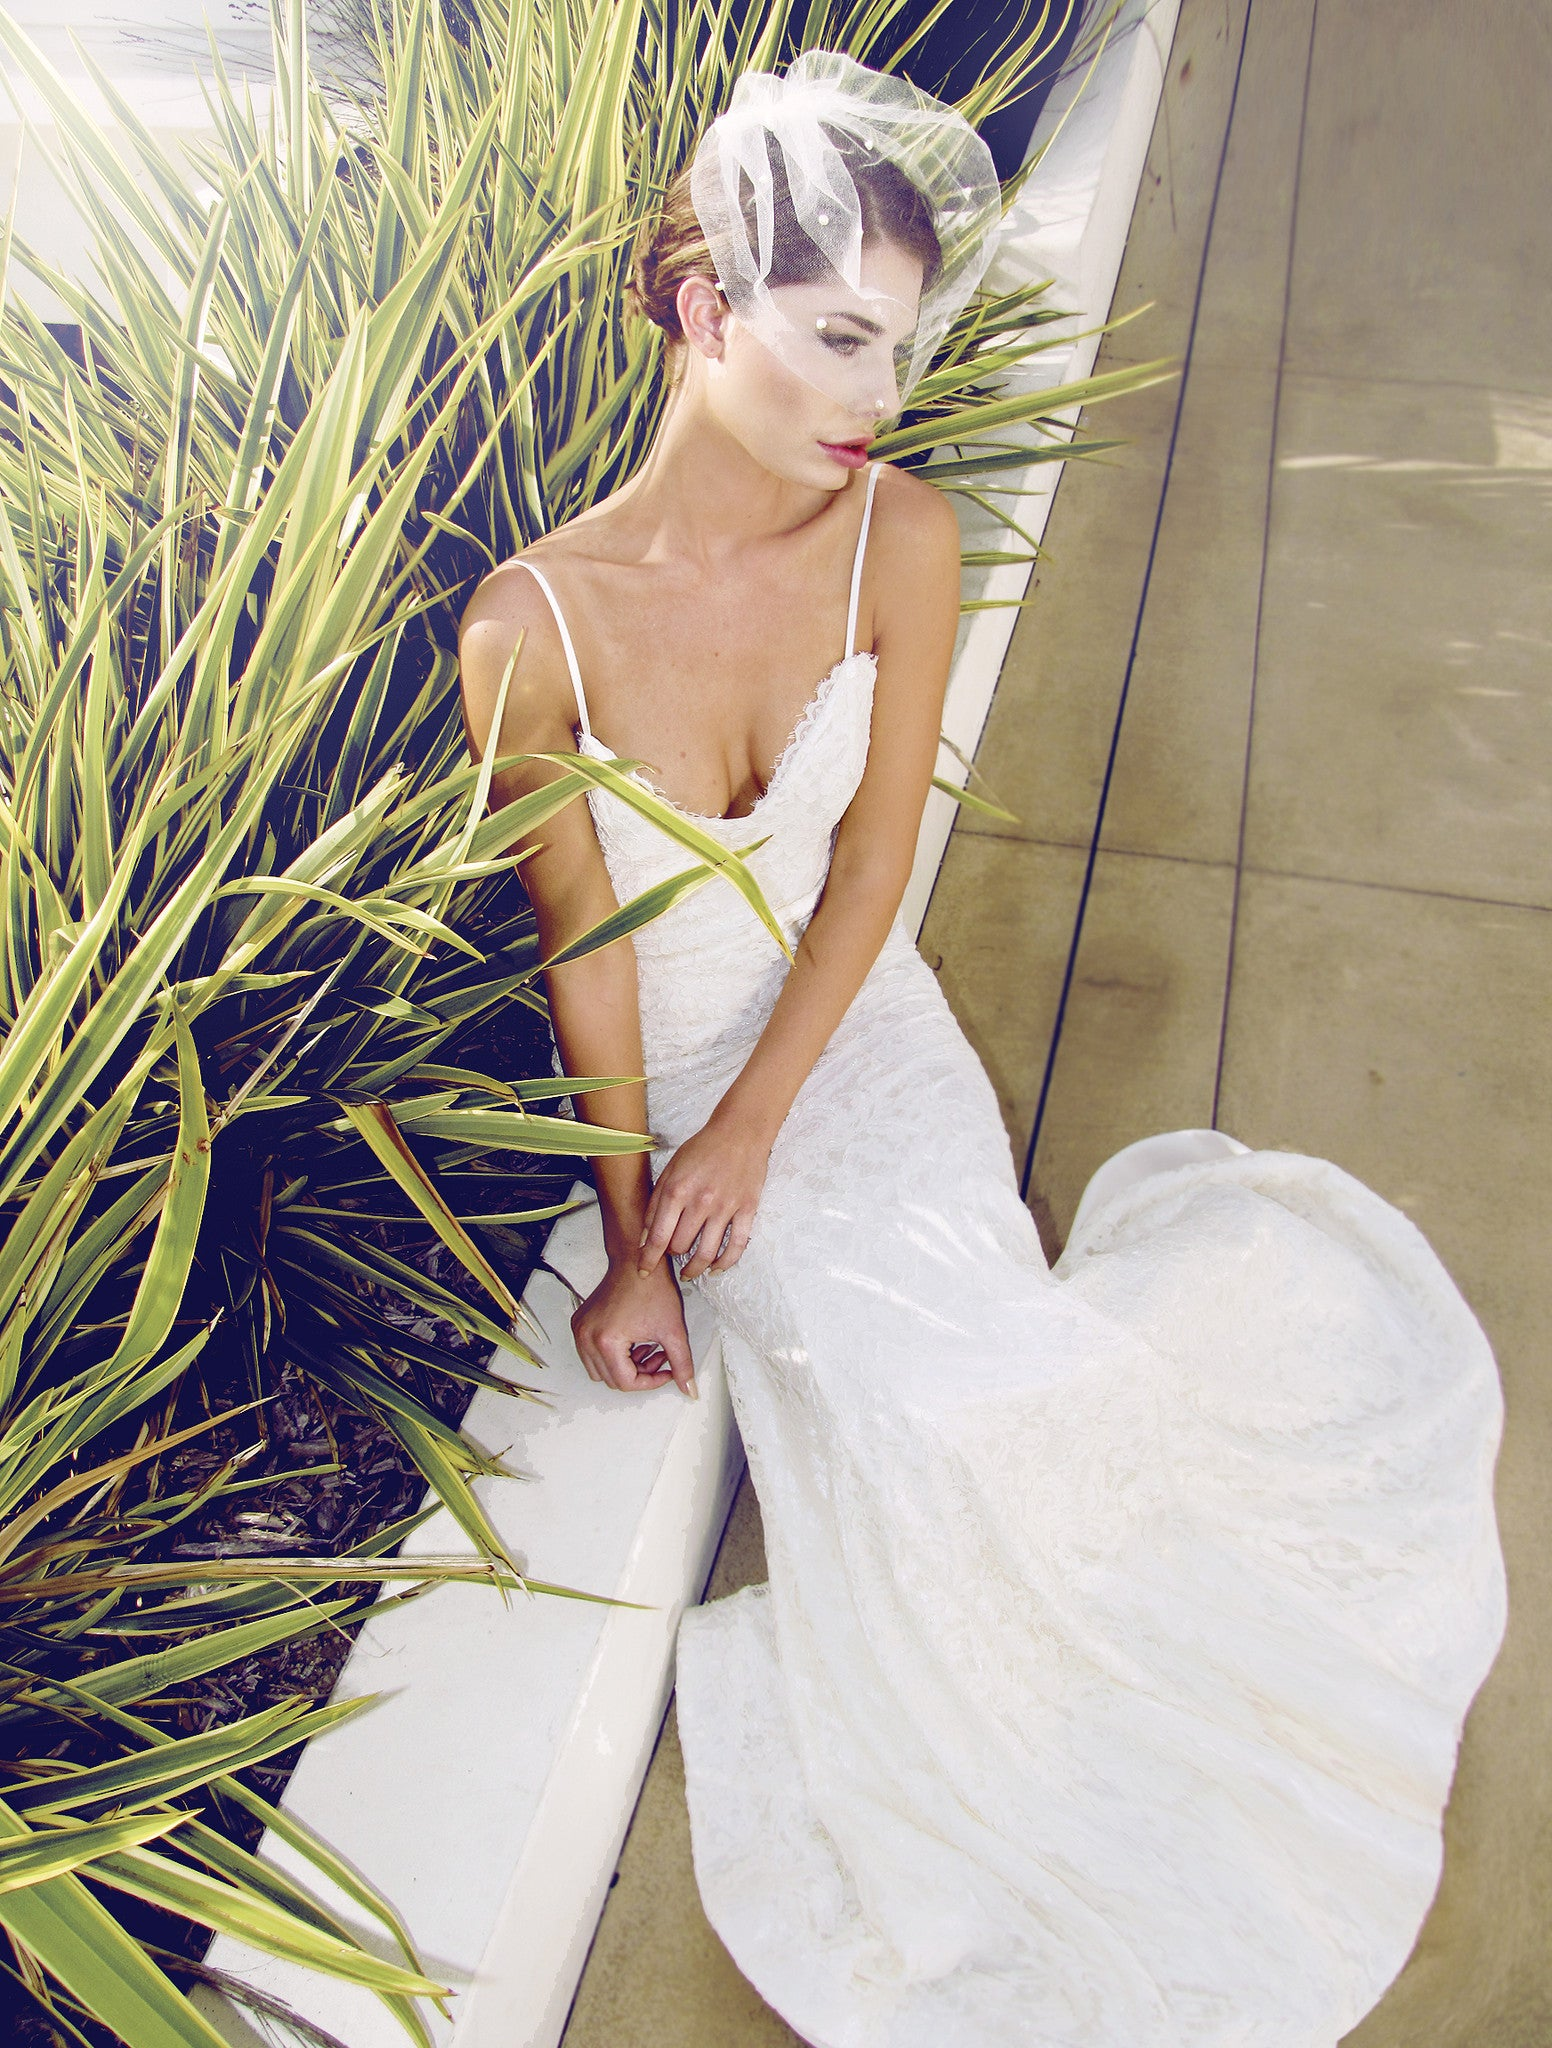 Destination and beach wedding gowns. Bohemia bridal style from Lauren Elaine.